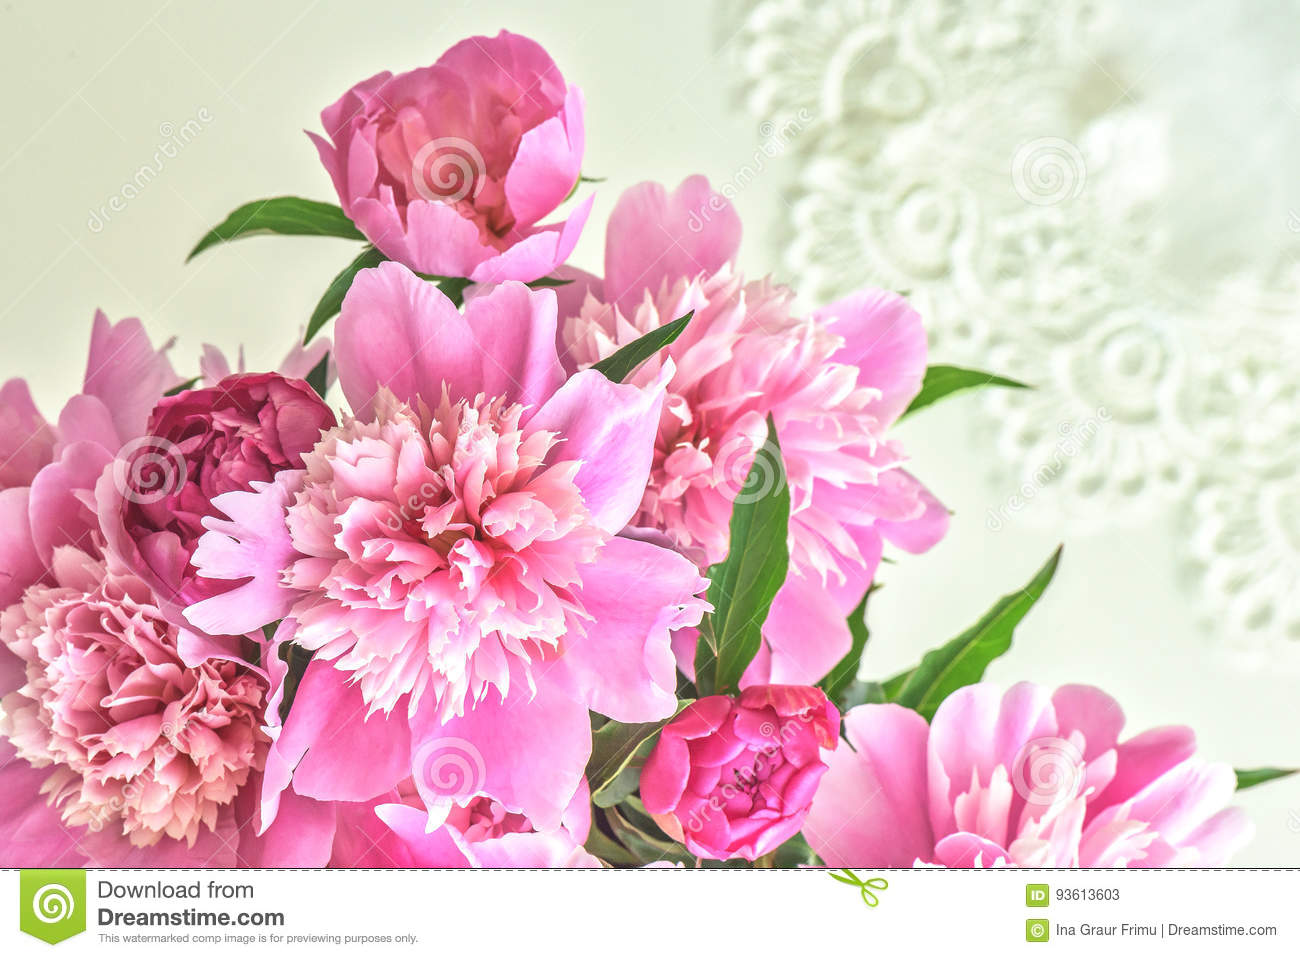 Peony flowers bouquet springtime fresh natural composition stock download peony flowers bouquet springtime fresh natural composition stock image image of blossom izmirmasajfo